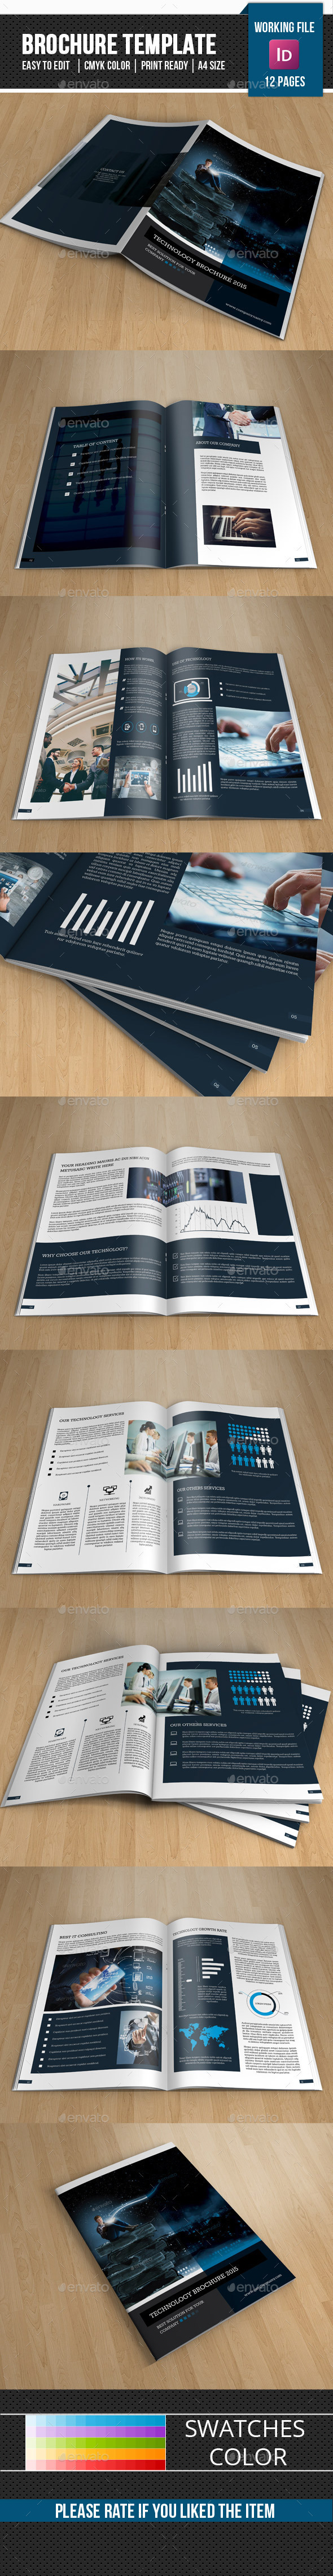 Technology Brochure Template On Behance - Technology brochure template